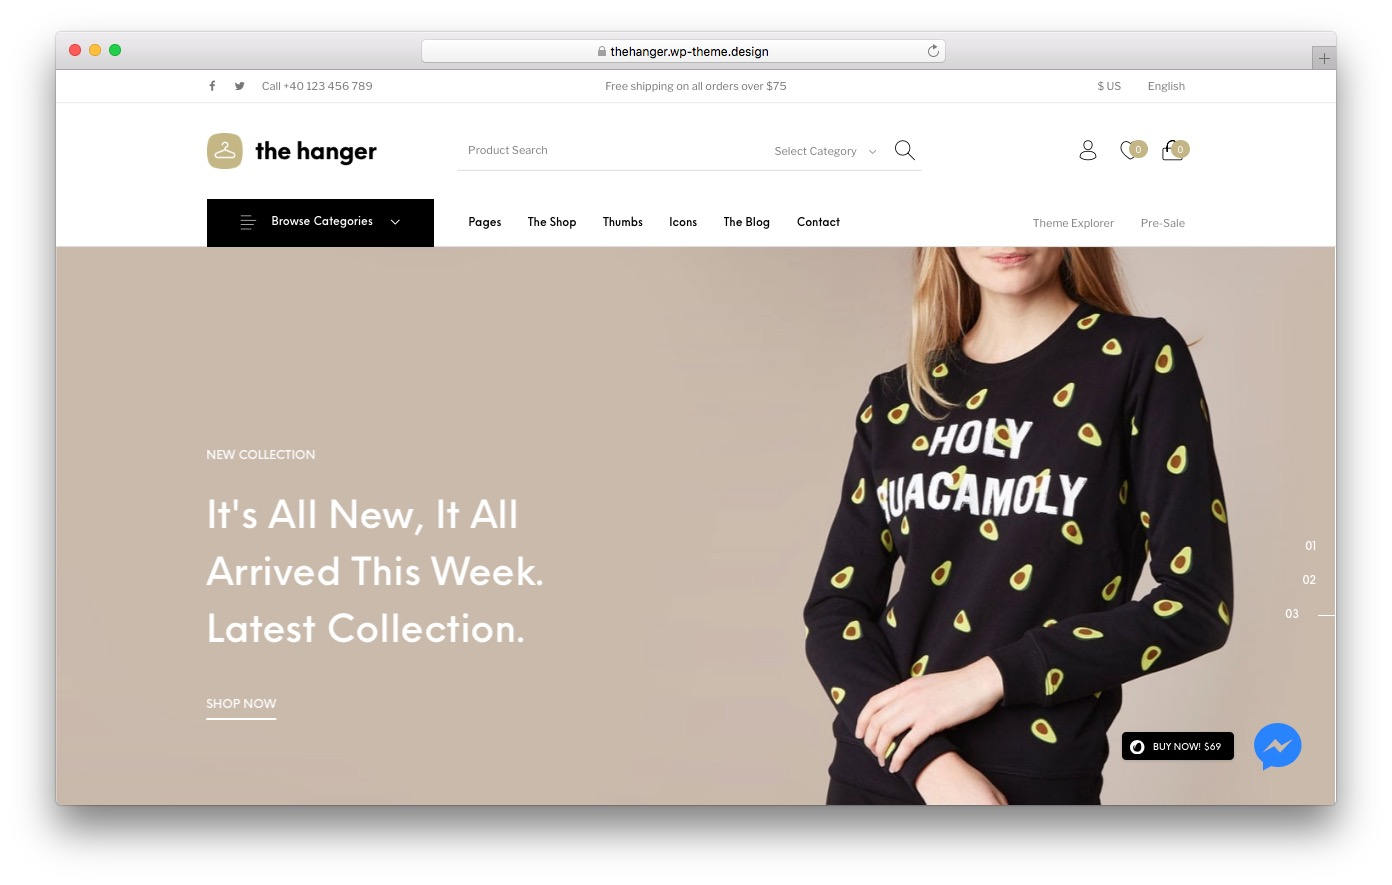 The Hanger is a Great for Ecommerce Site